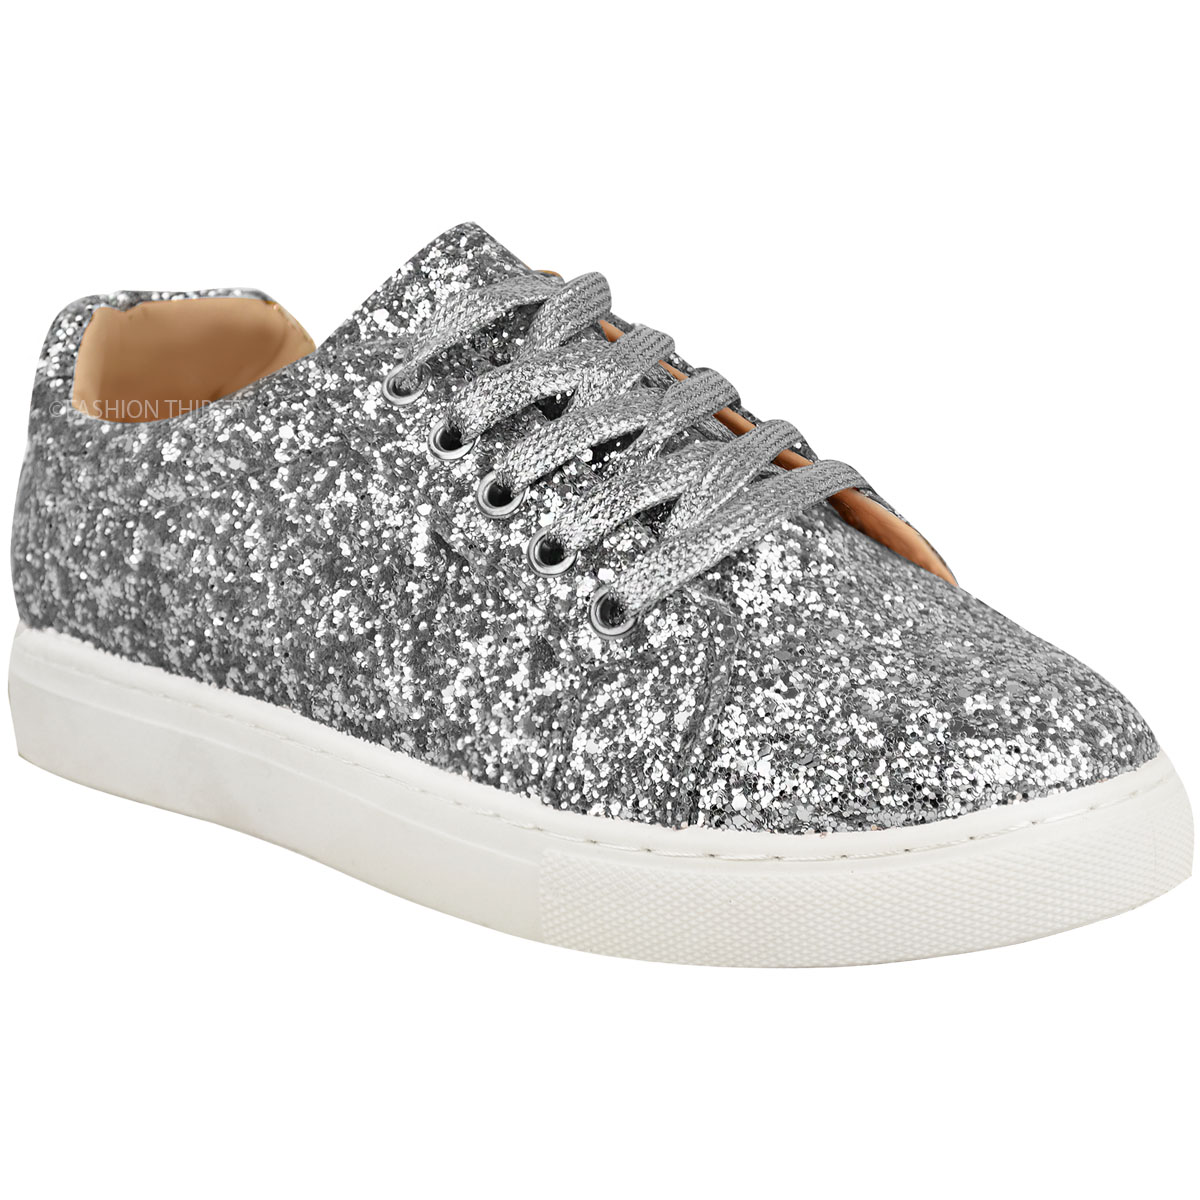 Womens Ladies Flat Lace Up Glitter Sparkly Trainers Sneakers Pumps Shoes Size | eBay